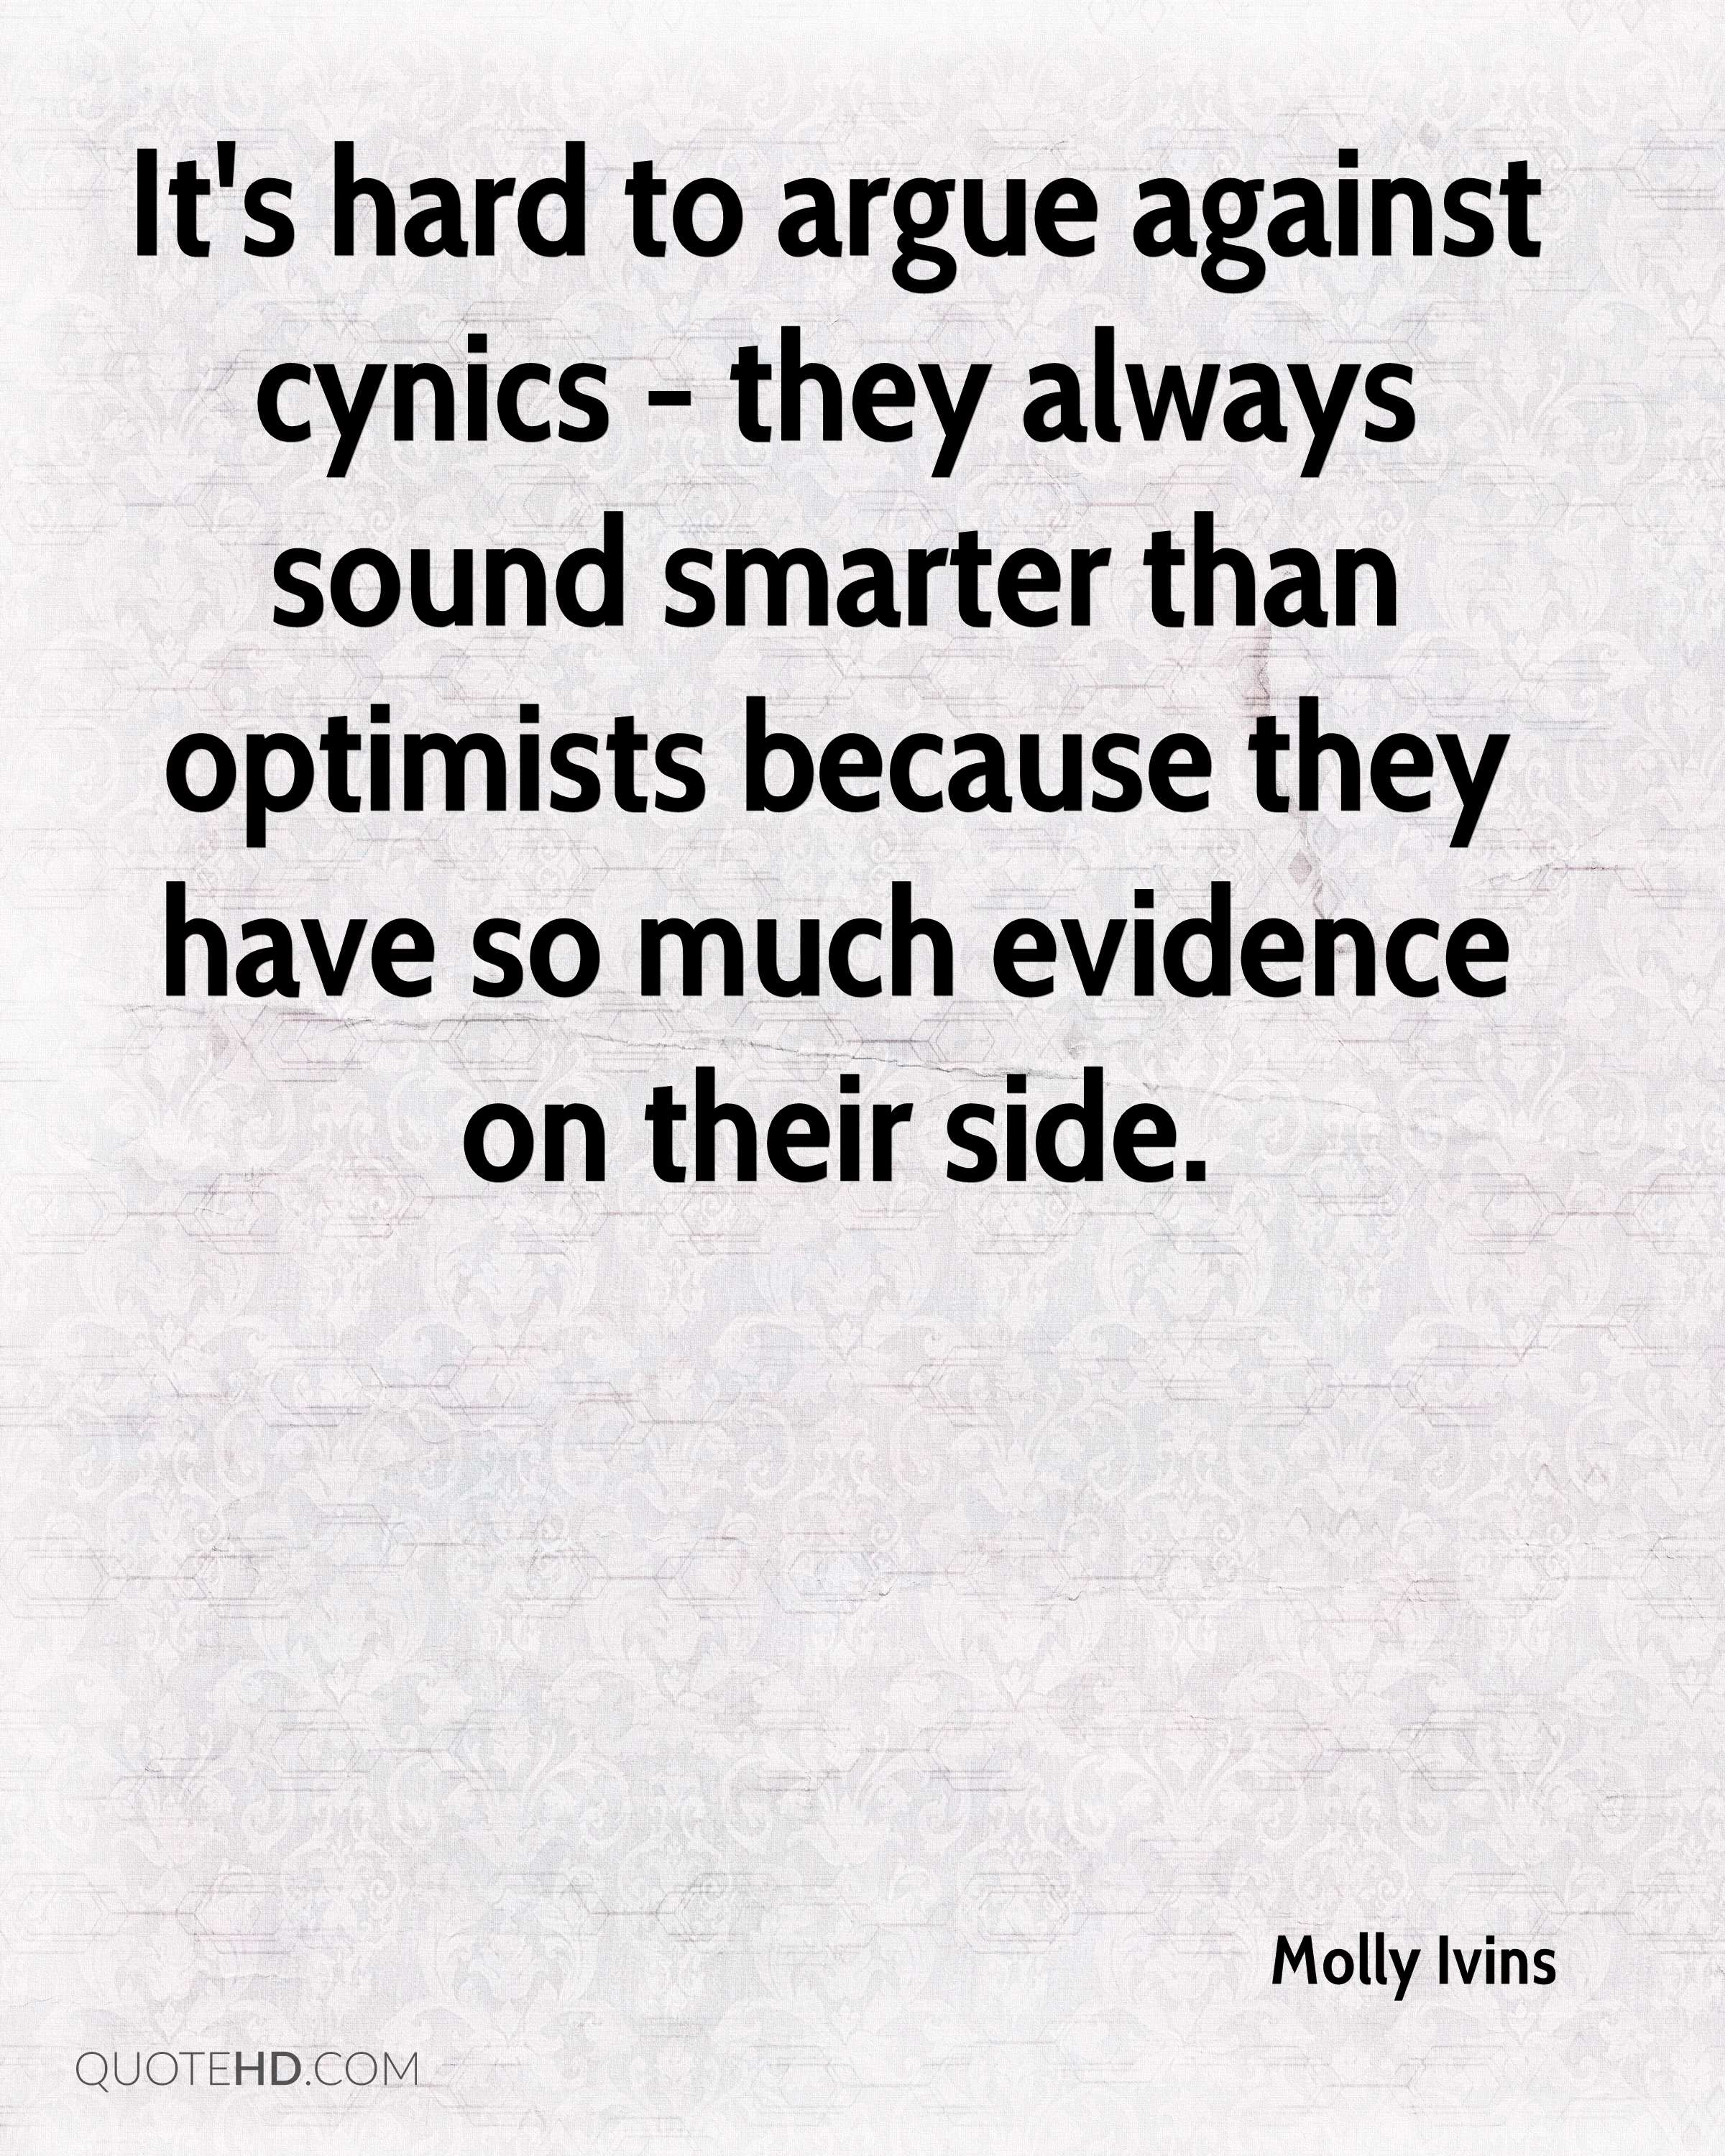 It's hard to argue against cynics - they always sound smarter than optimists because they have so much evidence on their side.